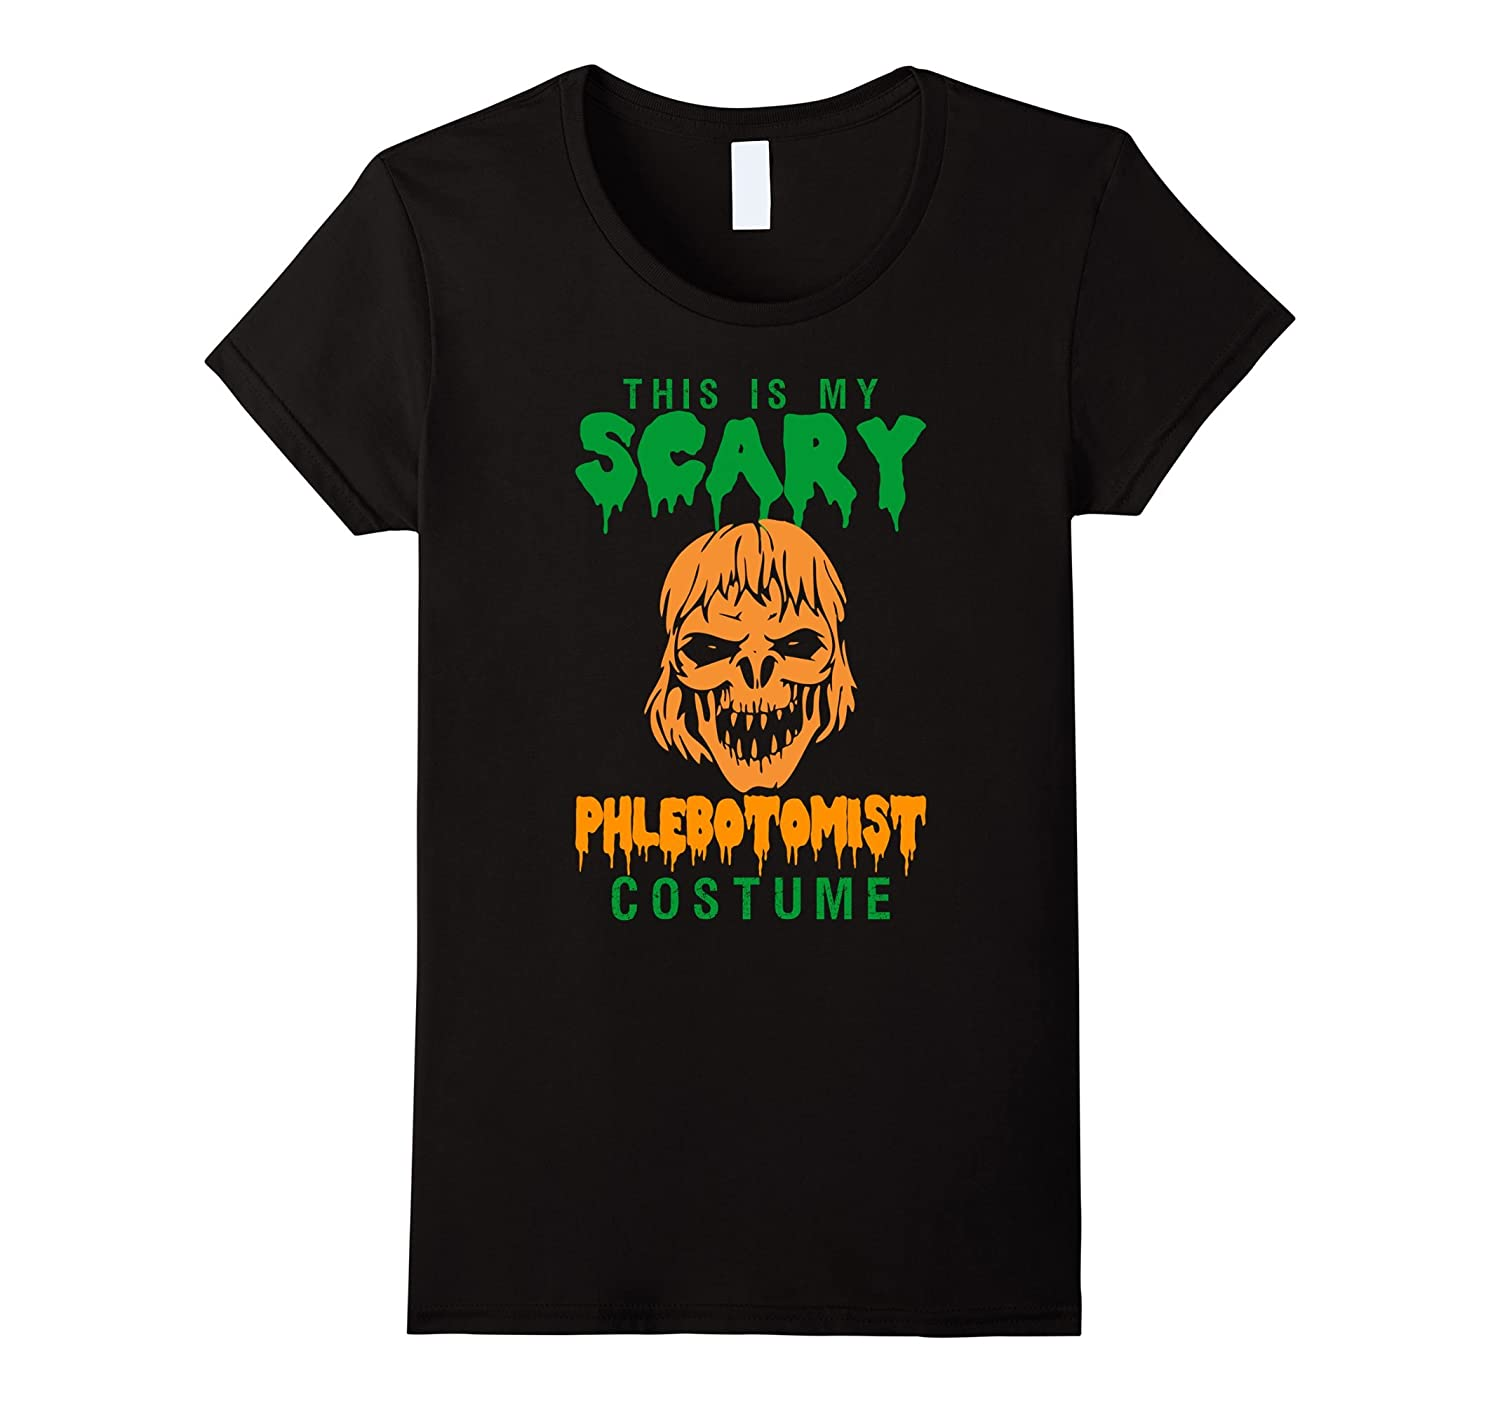 This Is My Scary Phlebotomist Costume Halloween T-Shirt